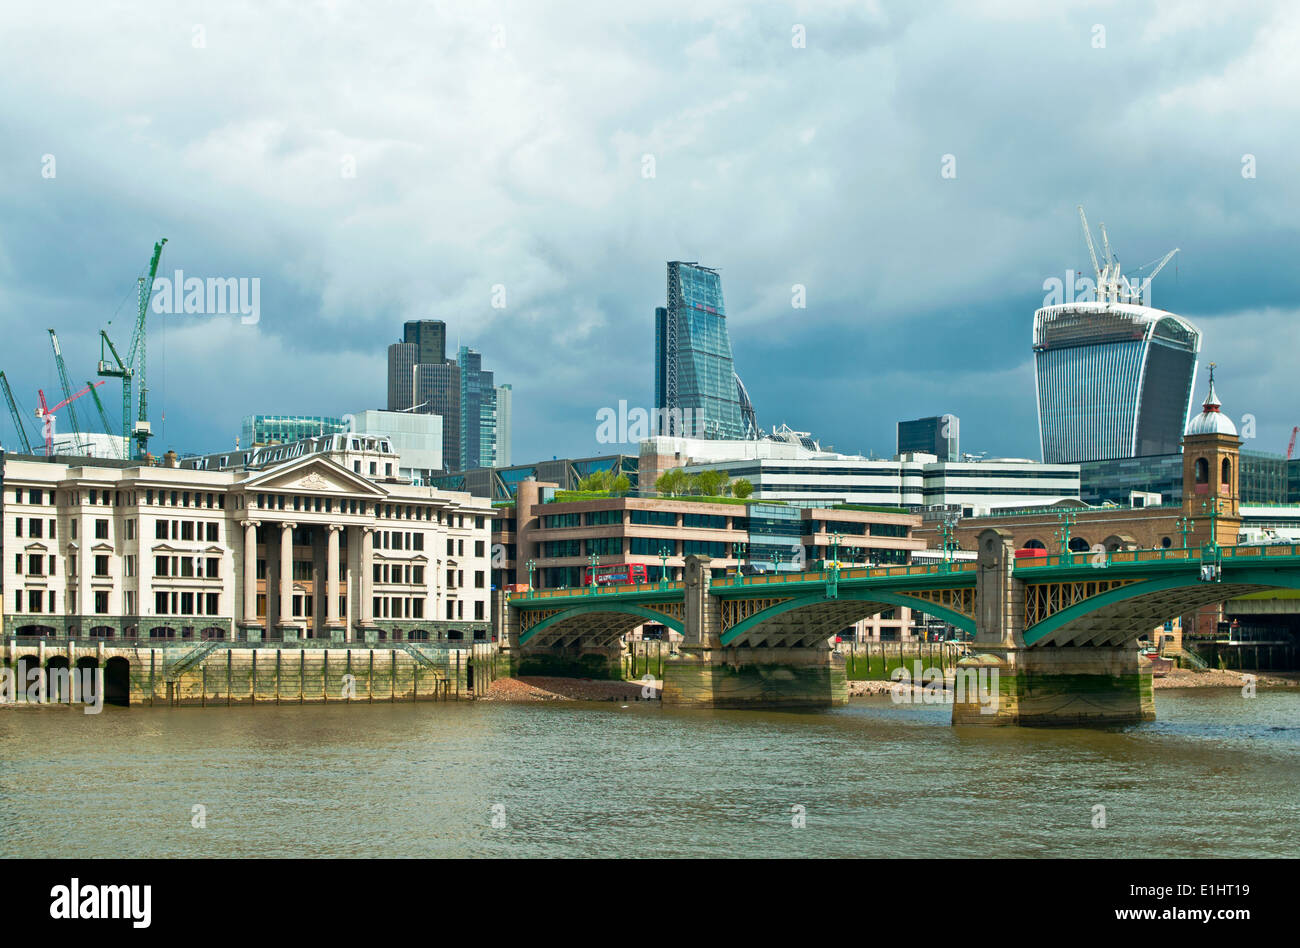 Vintners' Hall, Southwark Bridge, the Cheese Grater and the Walkie Talkie skyscrapers seen across the Thames from the Southbank - Stock Image